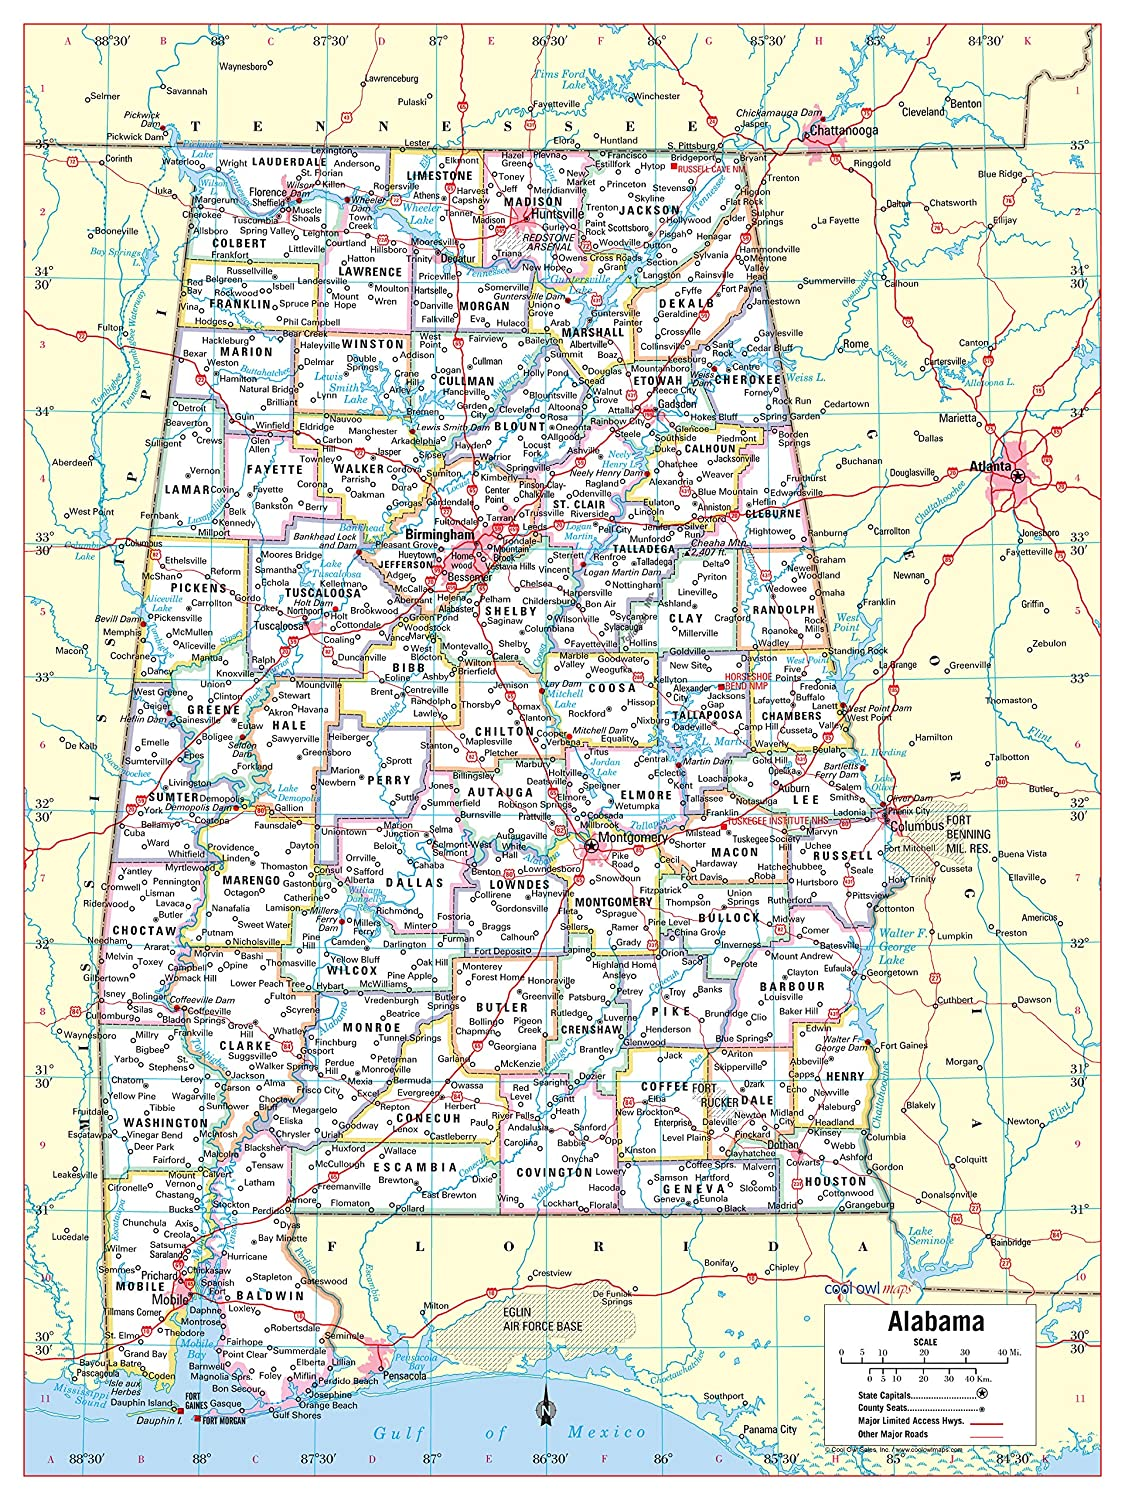 Amazon.com : Cool Owl Maps Alabama State Wall Map Poster ...